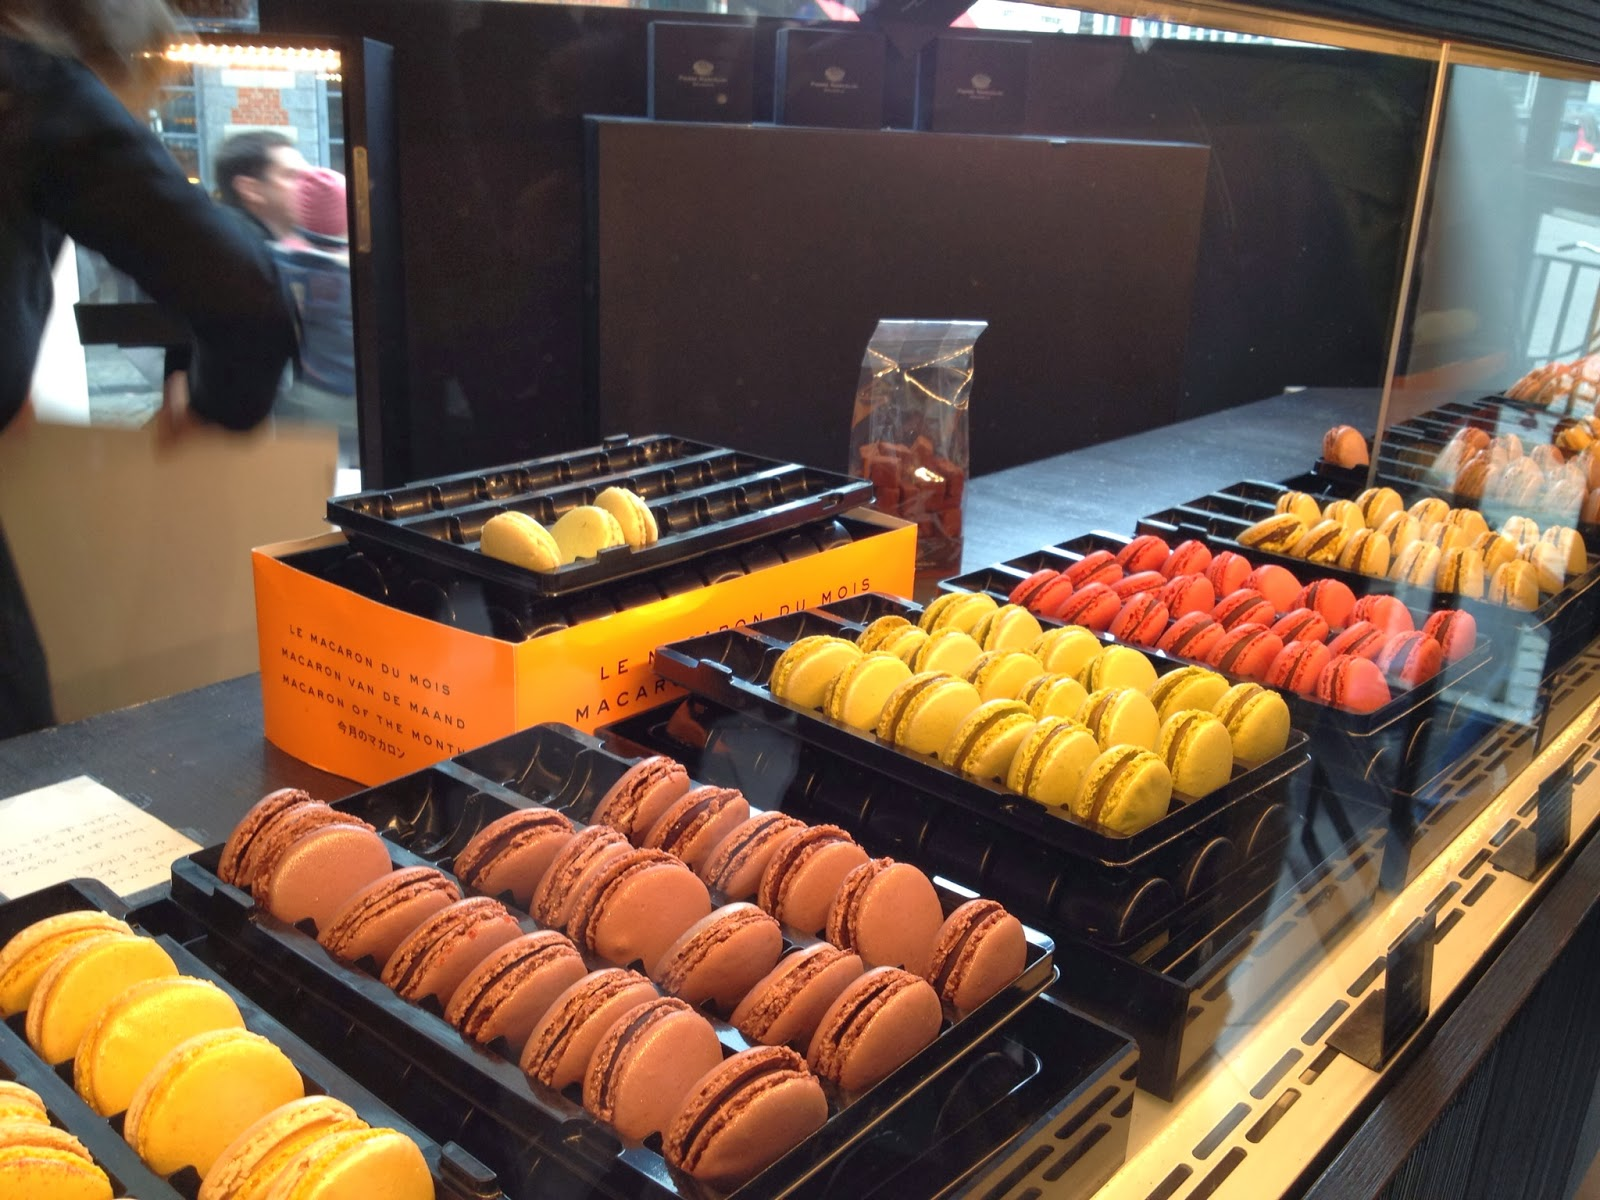 Brussels - Macarons at Pierre Marcolini